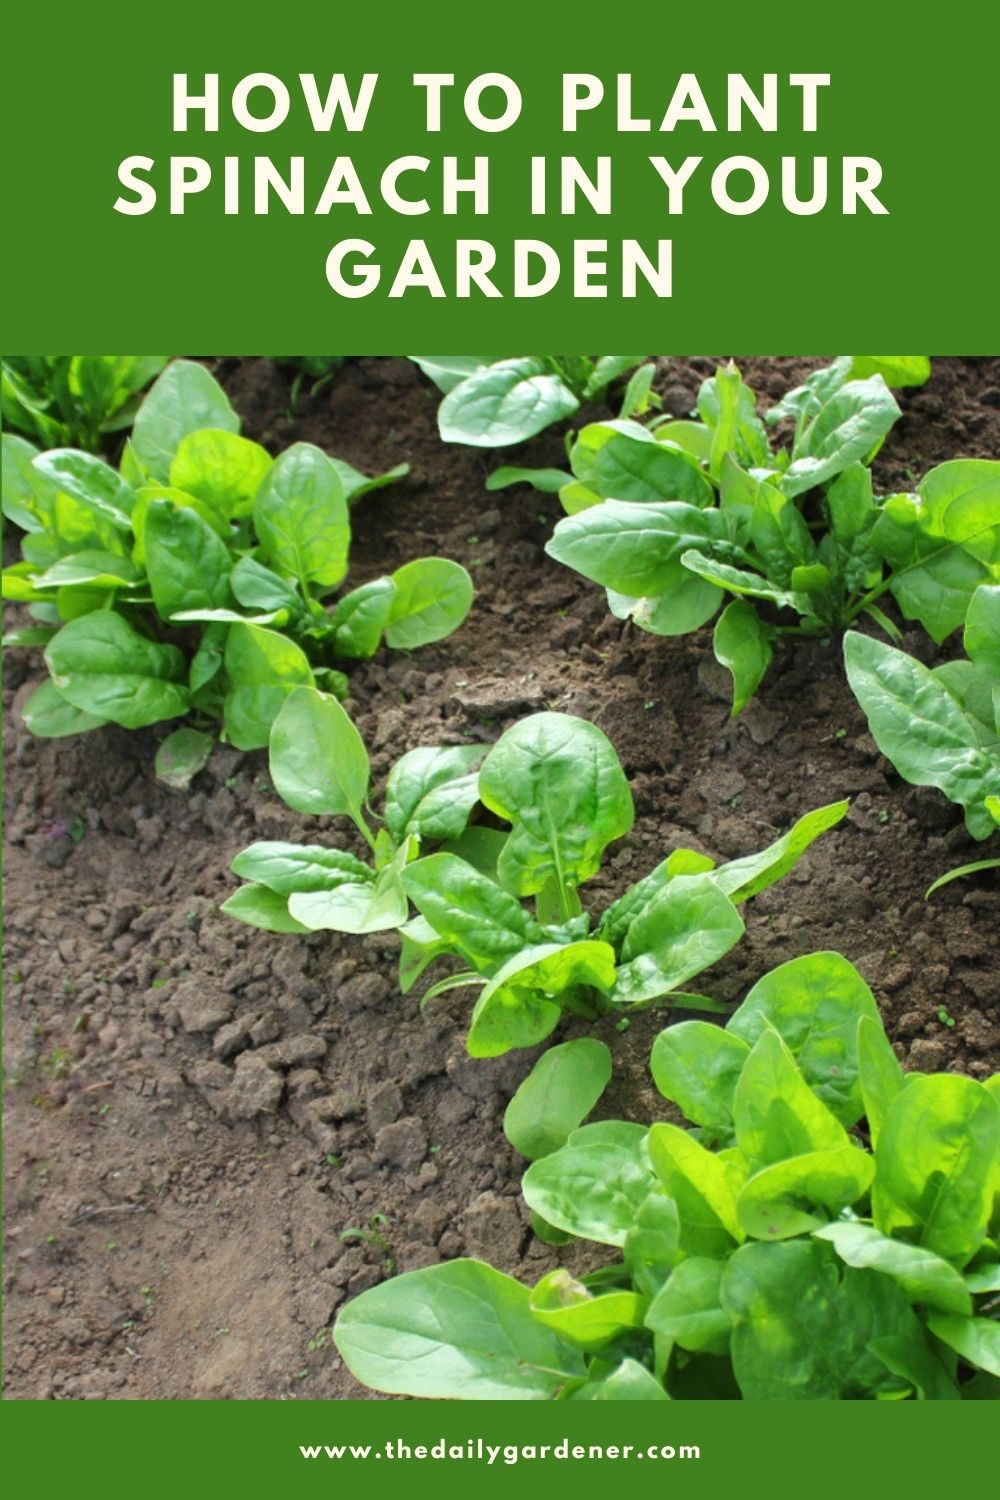 How to Plant Spinach in Your Garden (Tricks to Care!) 1